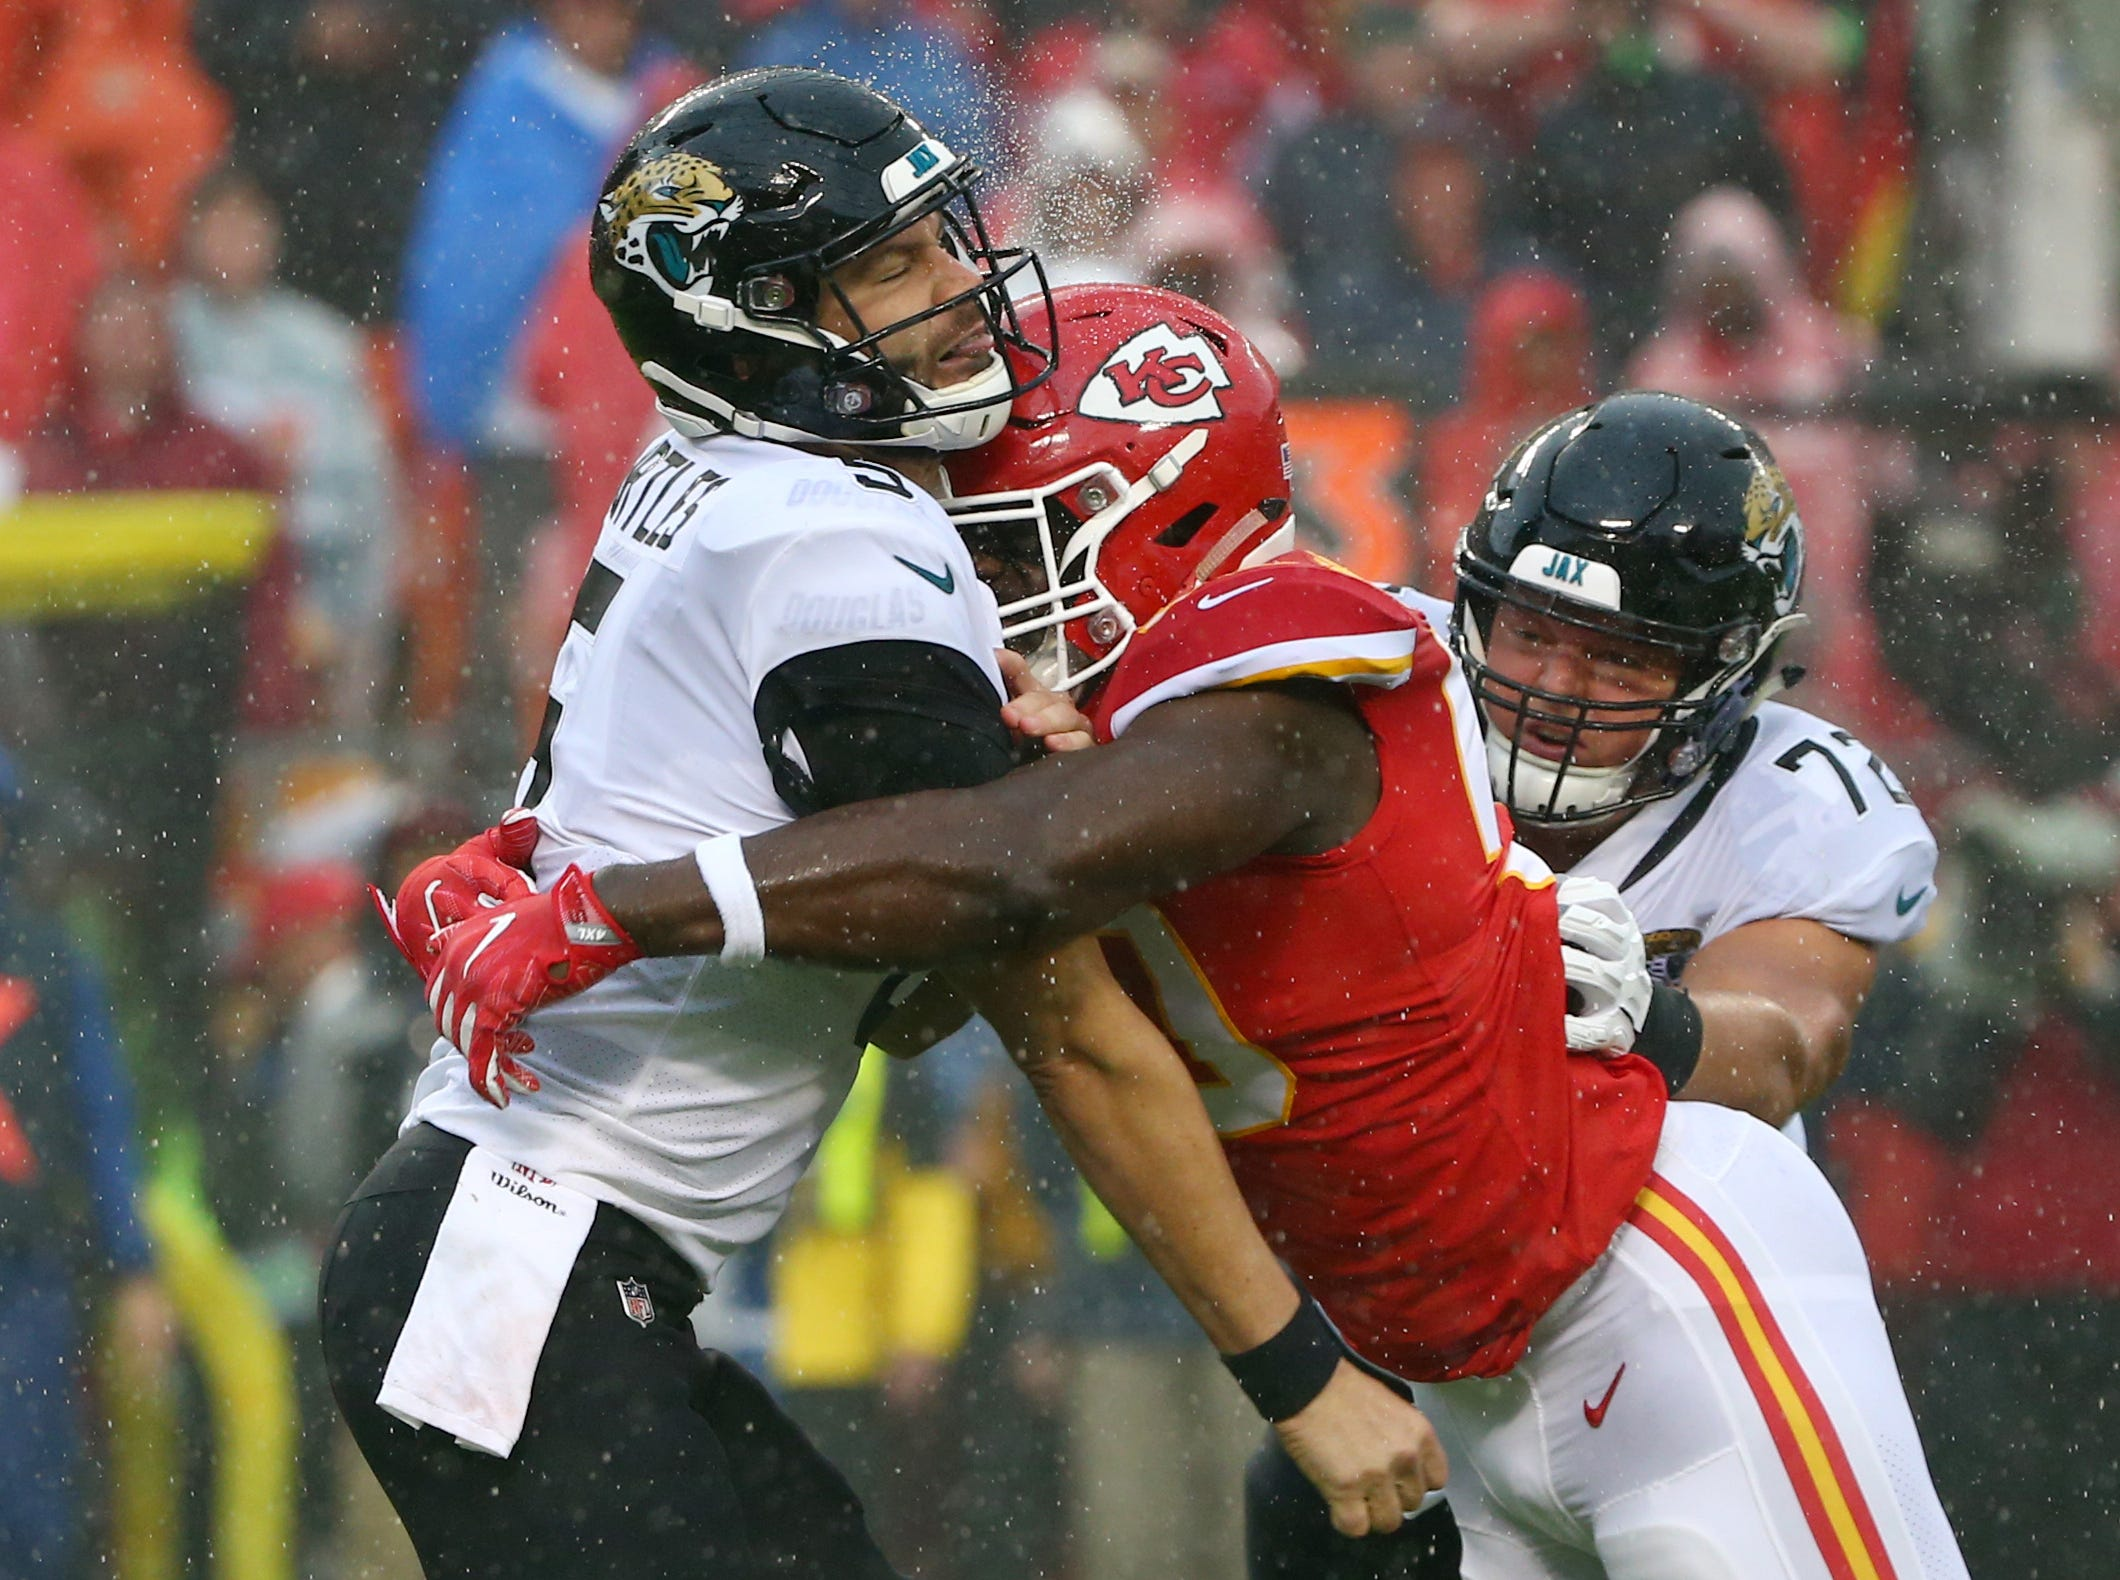 Oct. 7: Jacksonville Jaguars quarterback Blake Bortles (5) is hit by Kansas City Chiefs linebacker Justin Houston (50) after throwing the ball in the first half at Arrowhead Stadium.